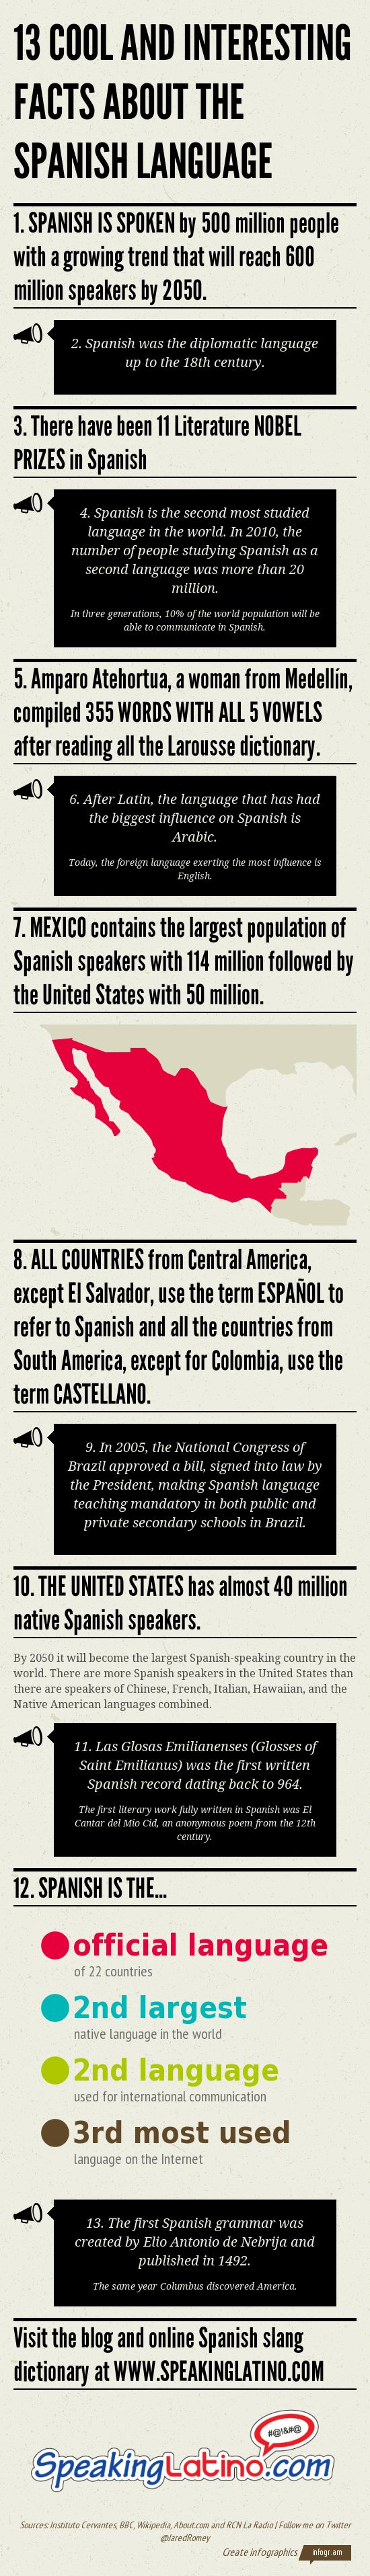 We are relaunching YourSpanishTranslation.com soon, so be sure to keep an eye out :-) #infographic #Spanish #xl8